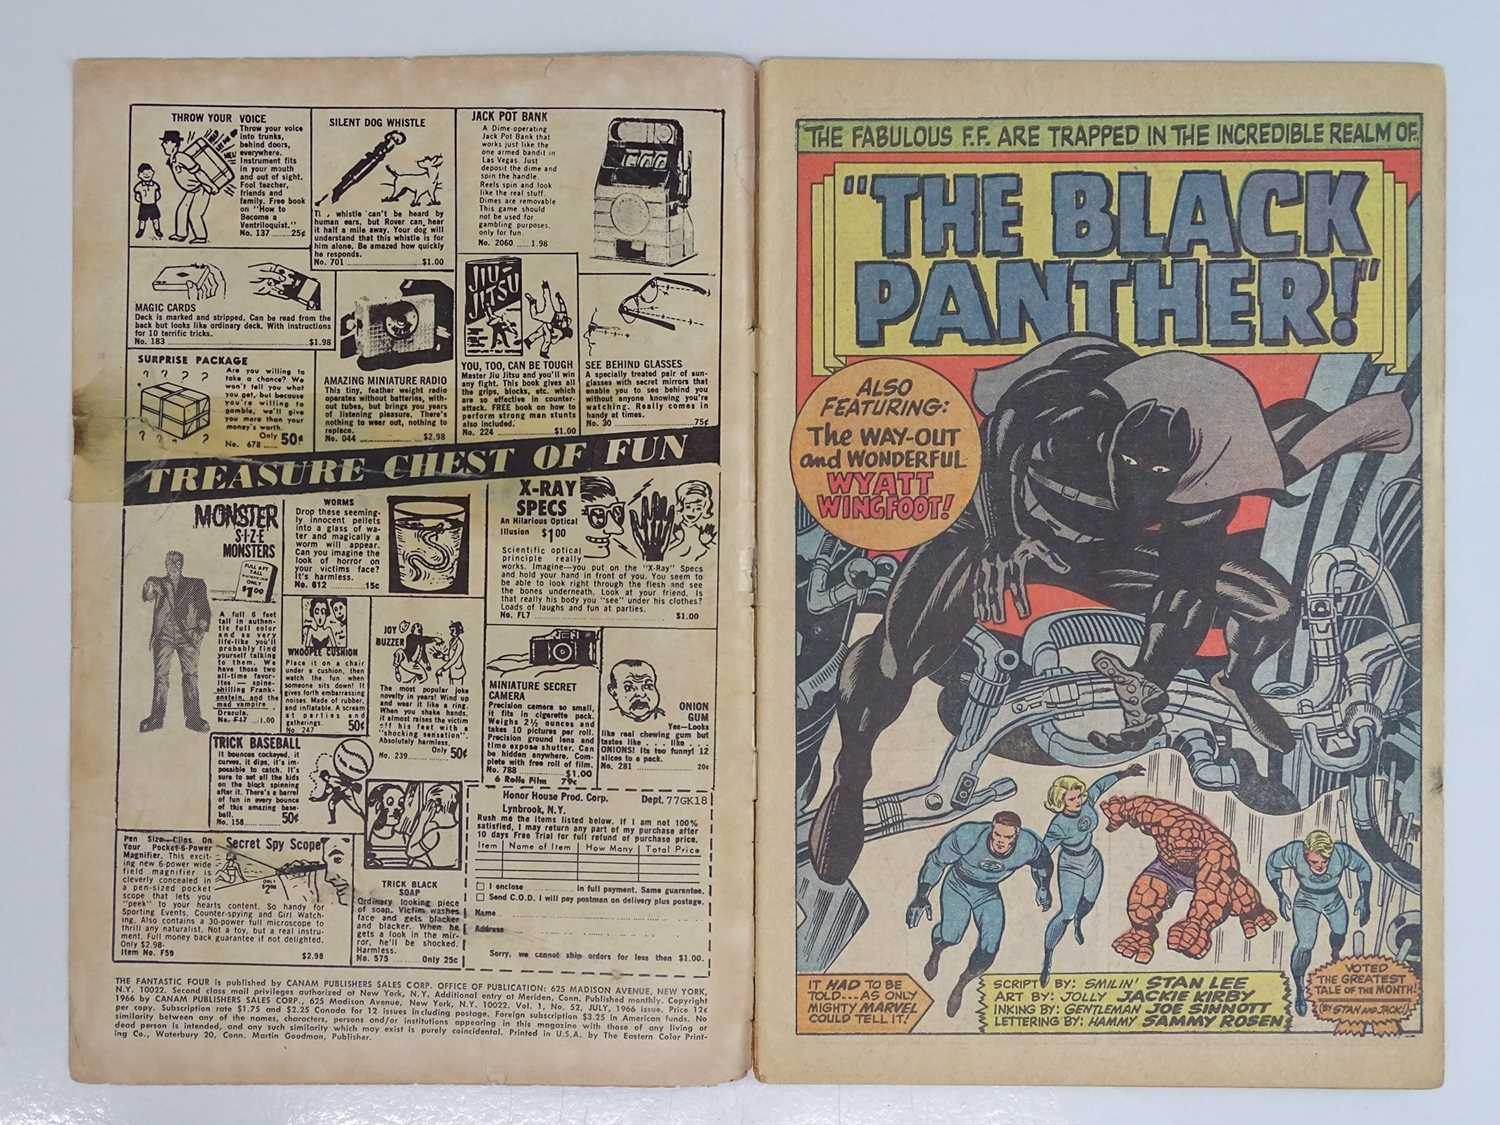 FANTASTIC FOUR #52 (1966 - MARVEL - UK Price Variant) - First appearance of Black Panther (one of - Image 4 of 10